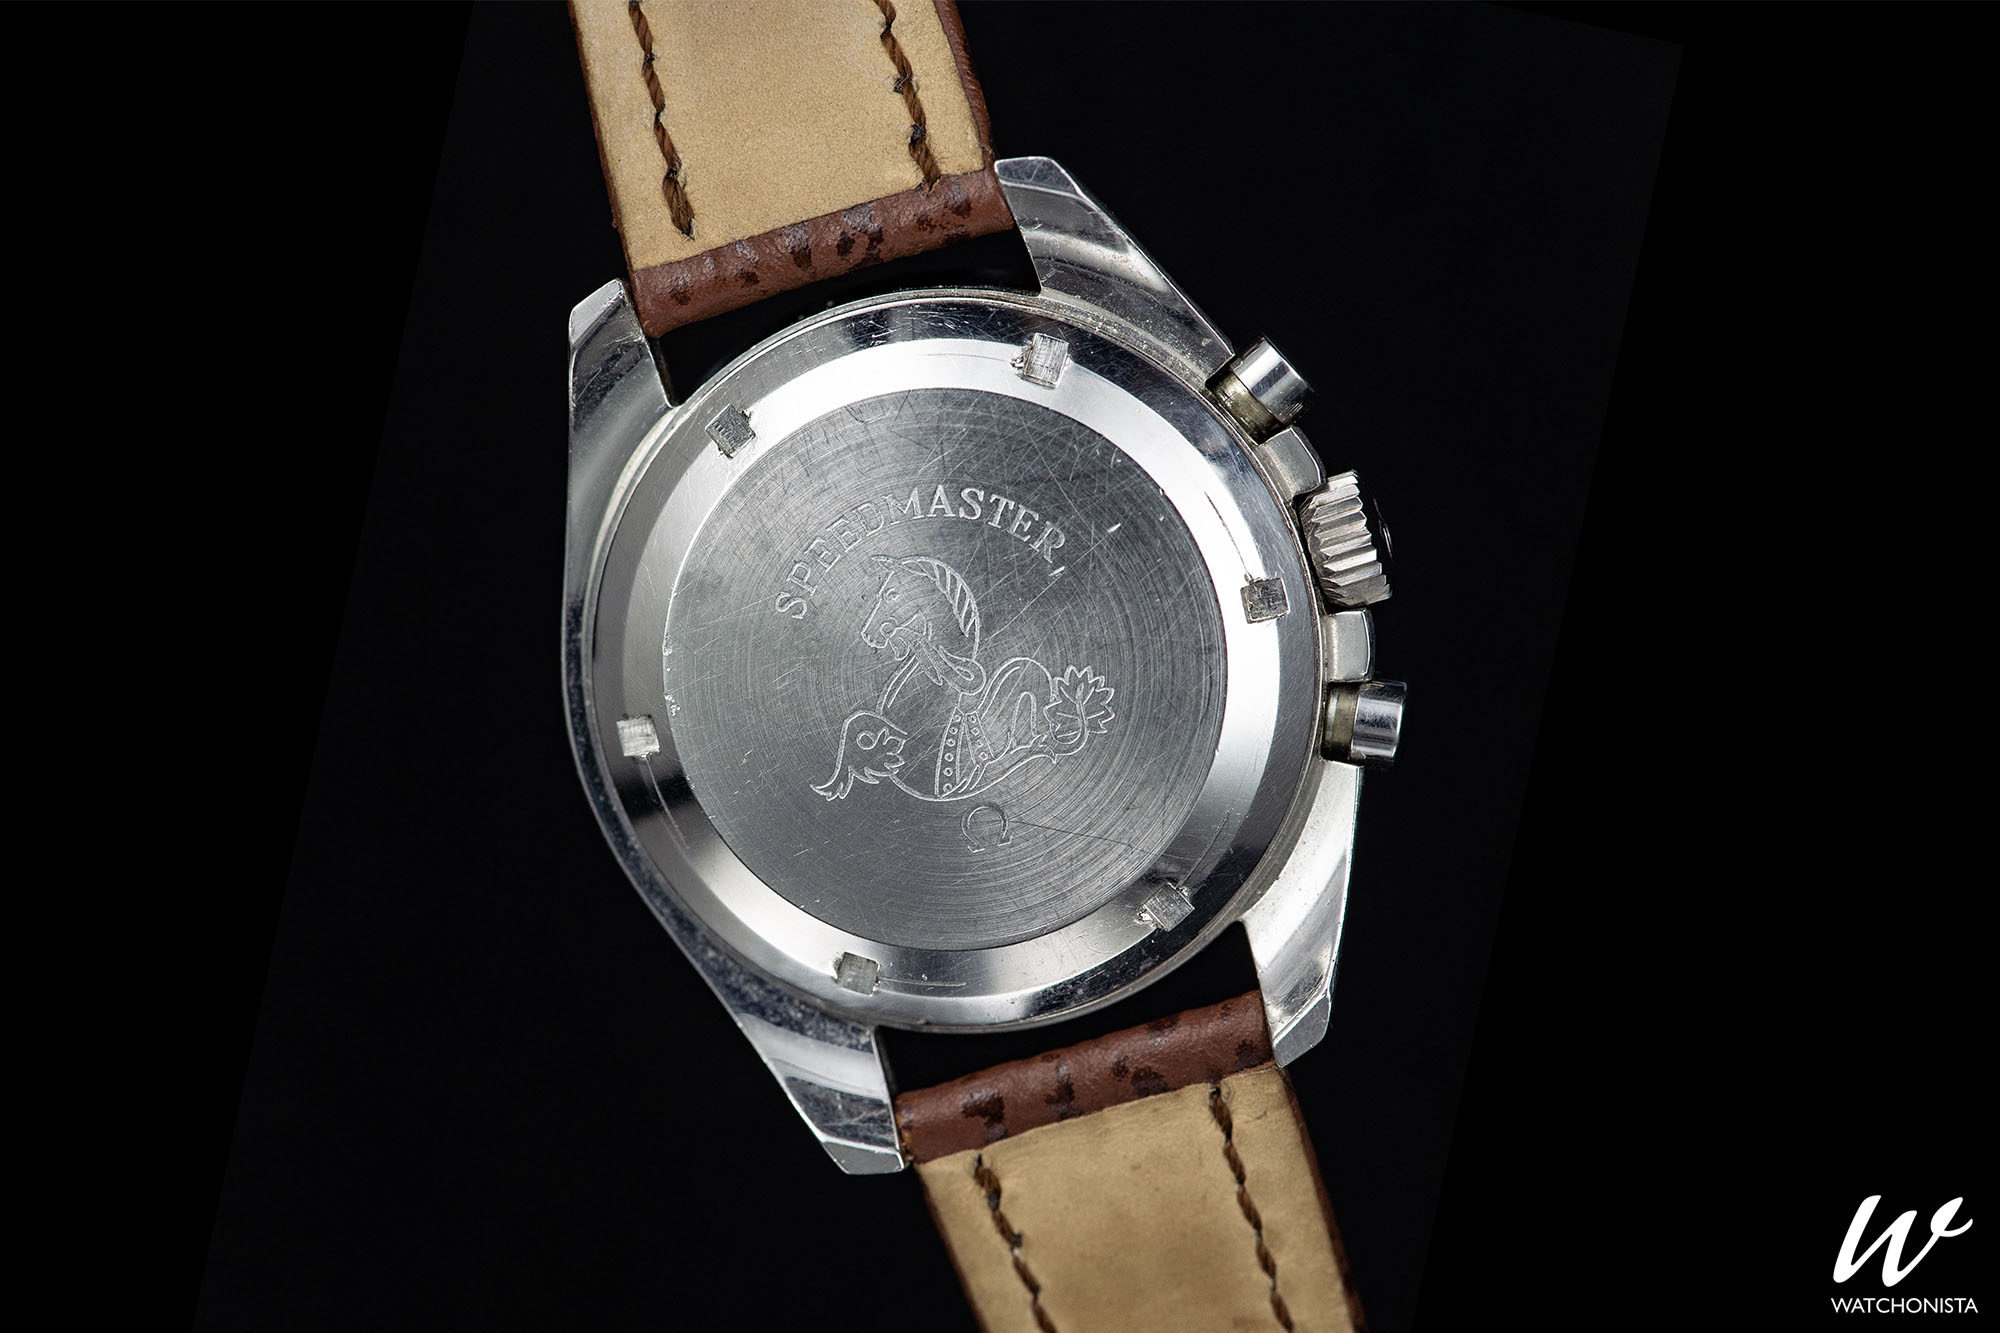 bonus video but why is the seamaster logo on the